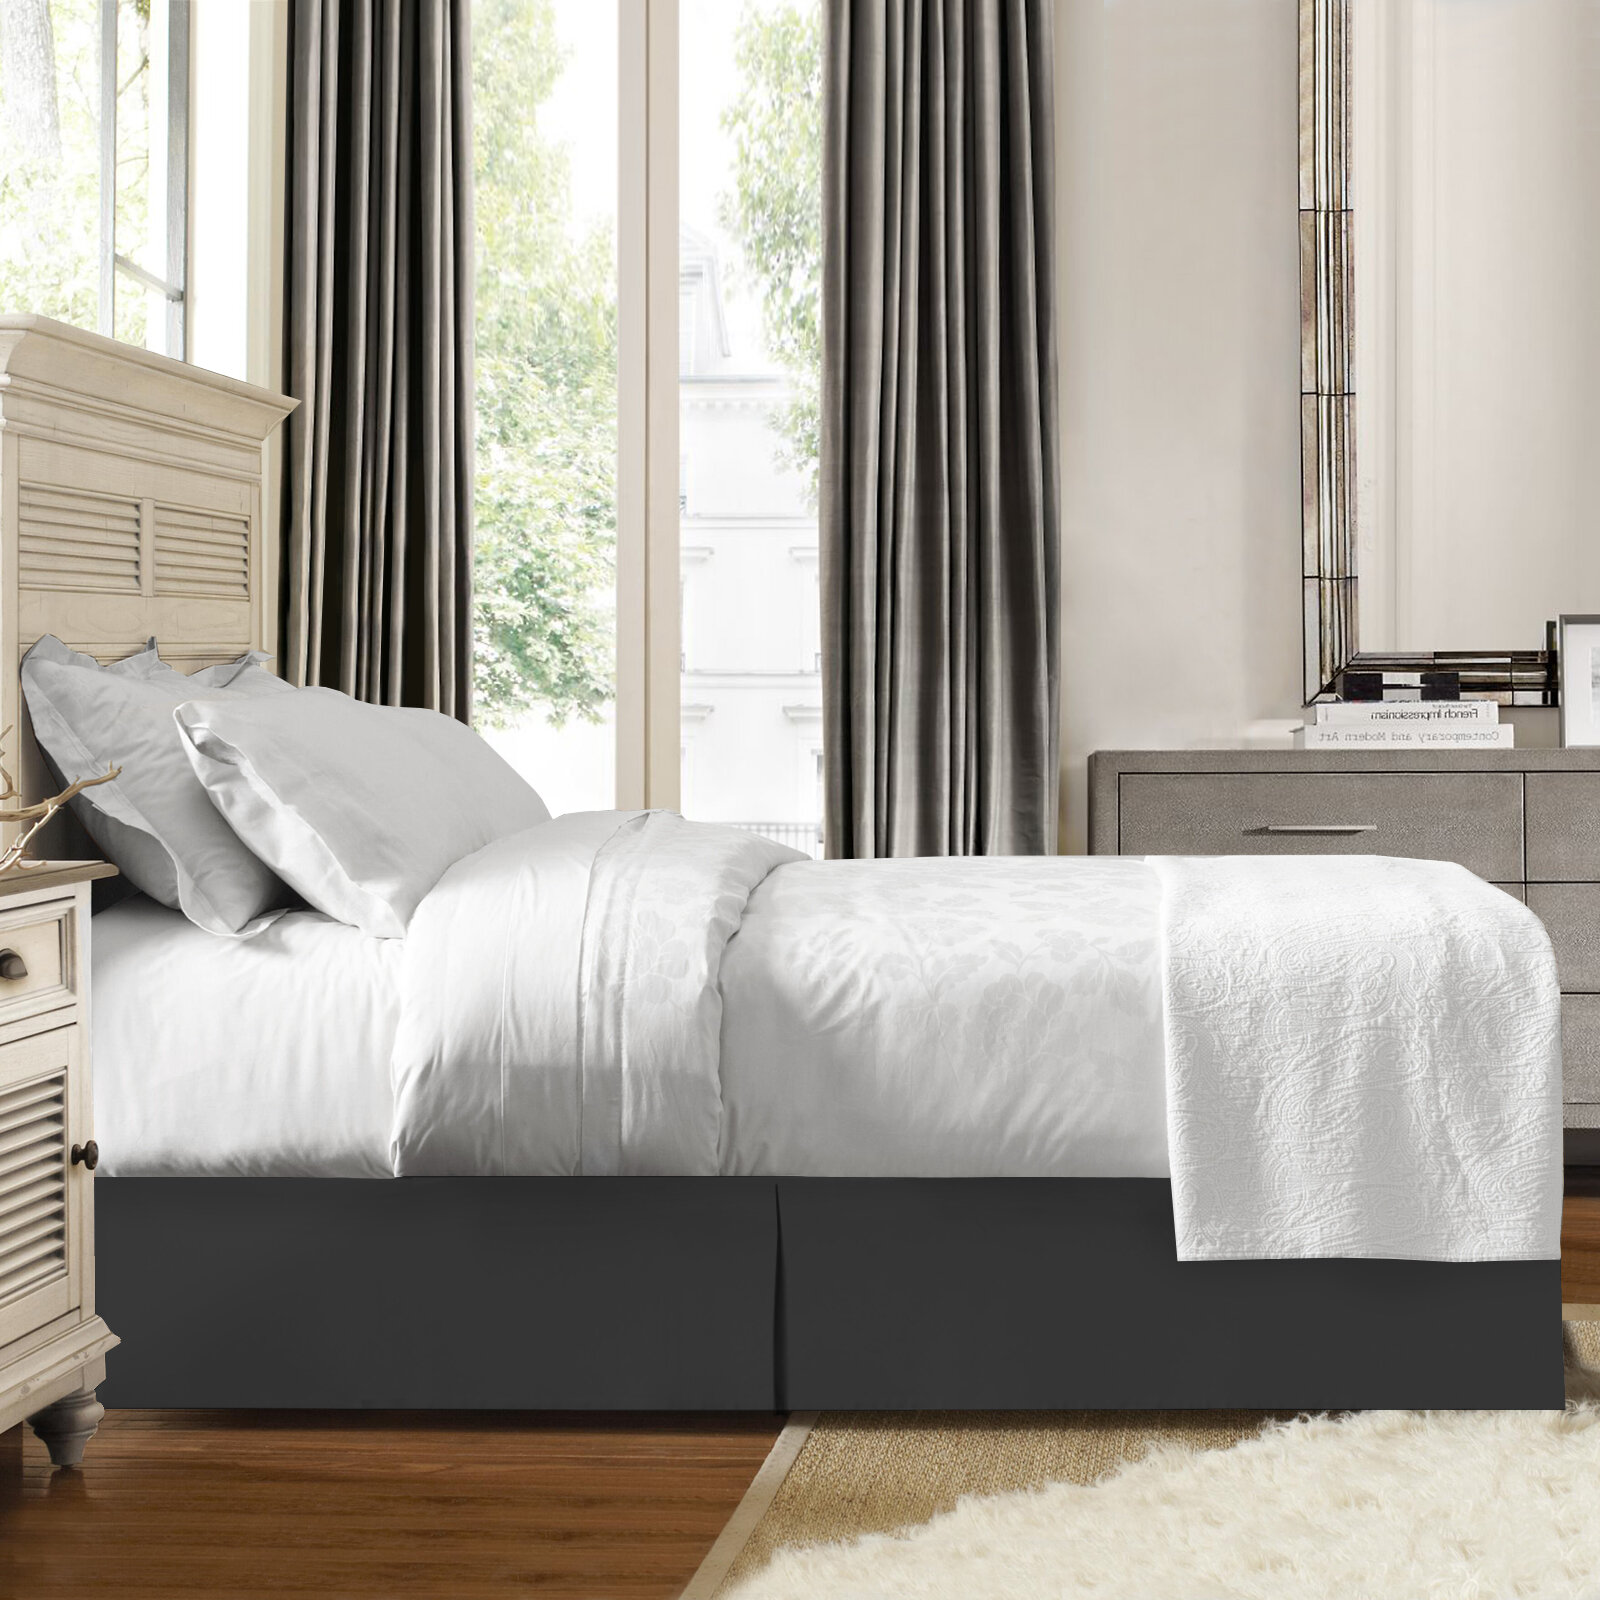 Gray Silver Bed Skirts Free Shipping Over 35 Wayfair